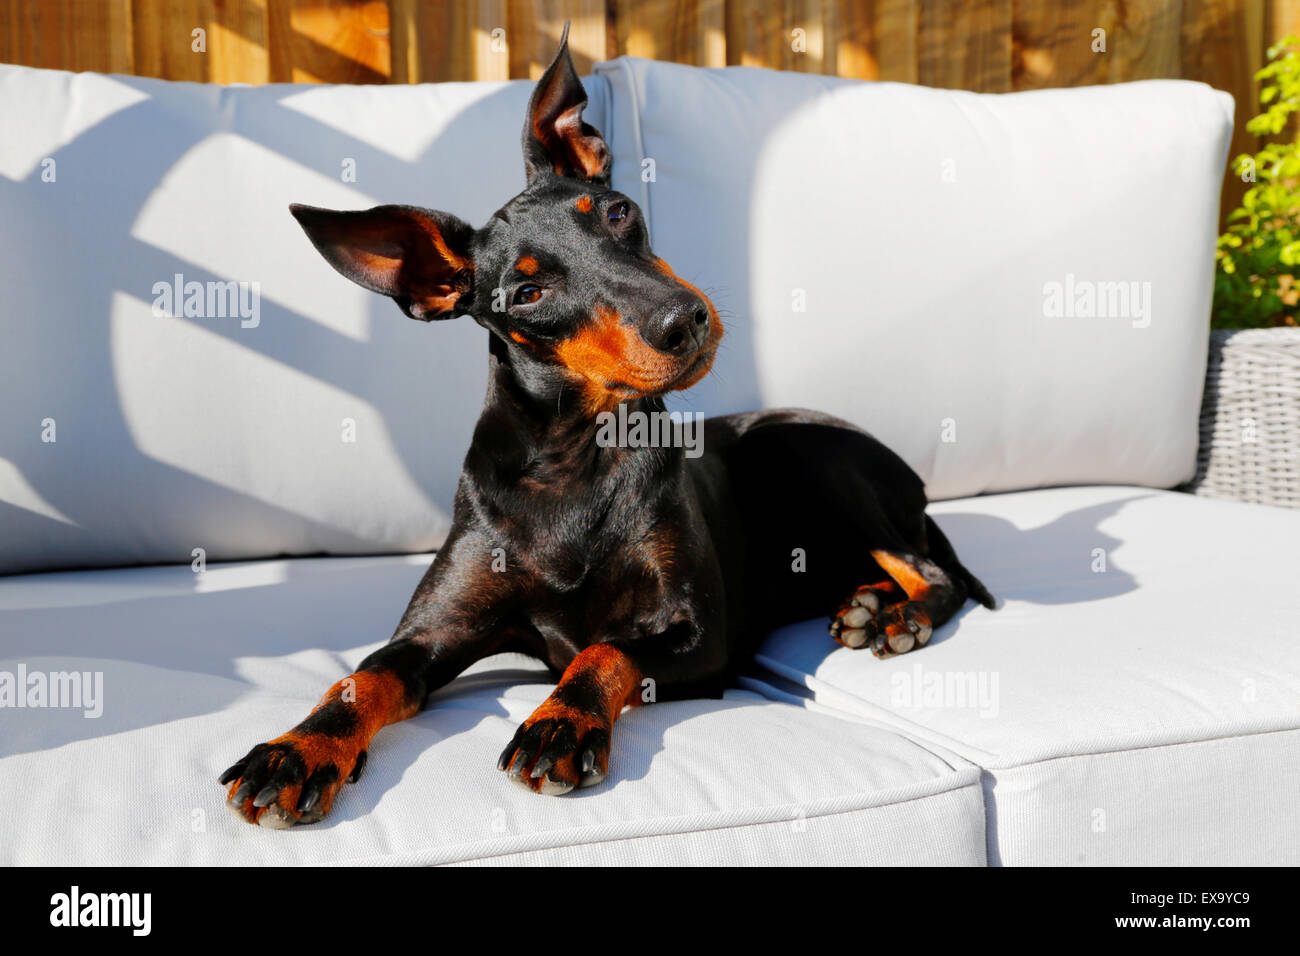 a-cute-dog-a-pedigree-manchester-terrier